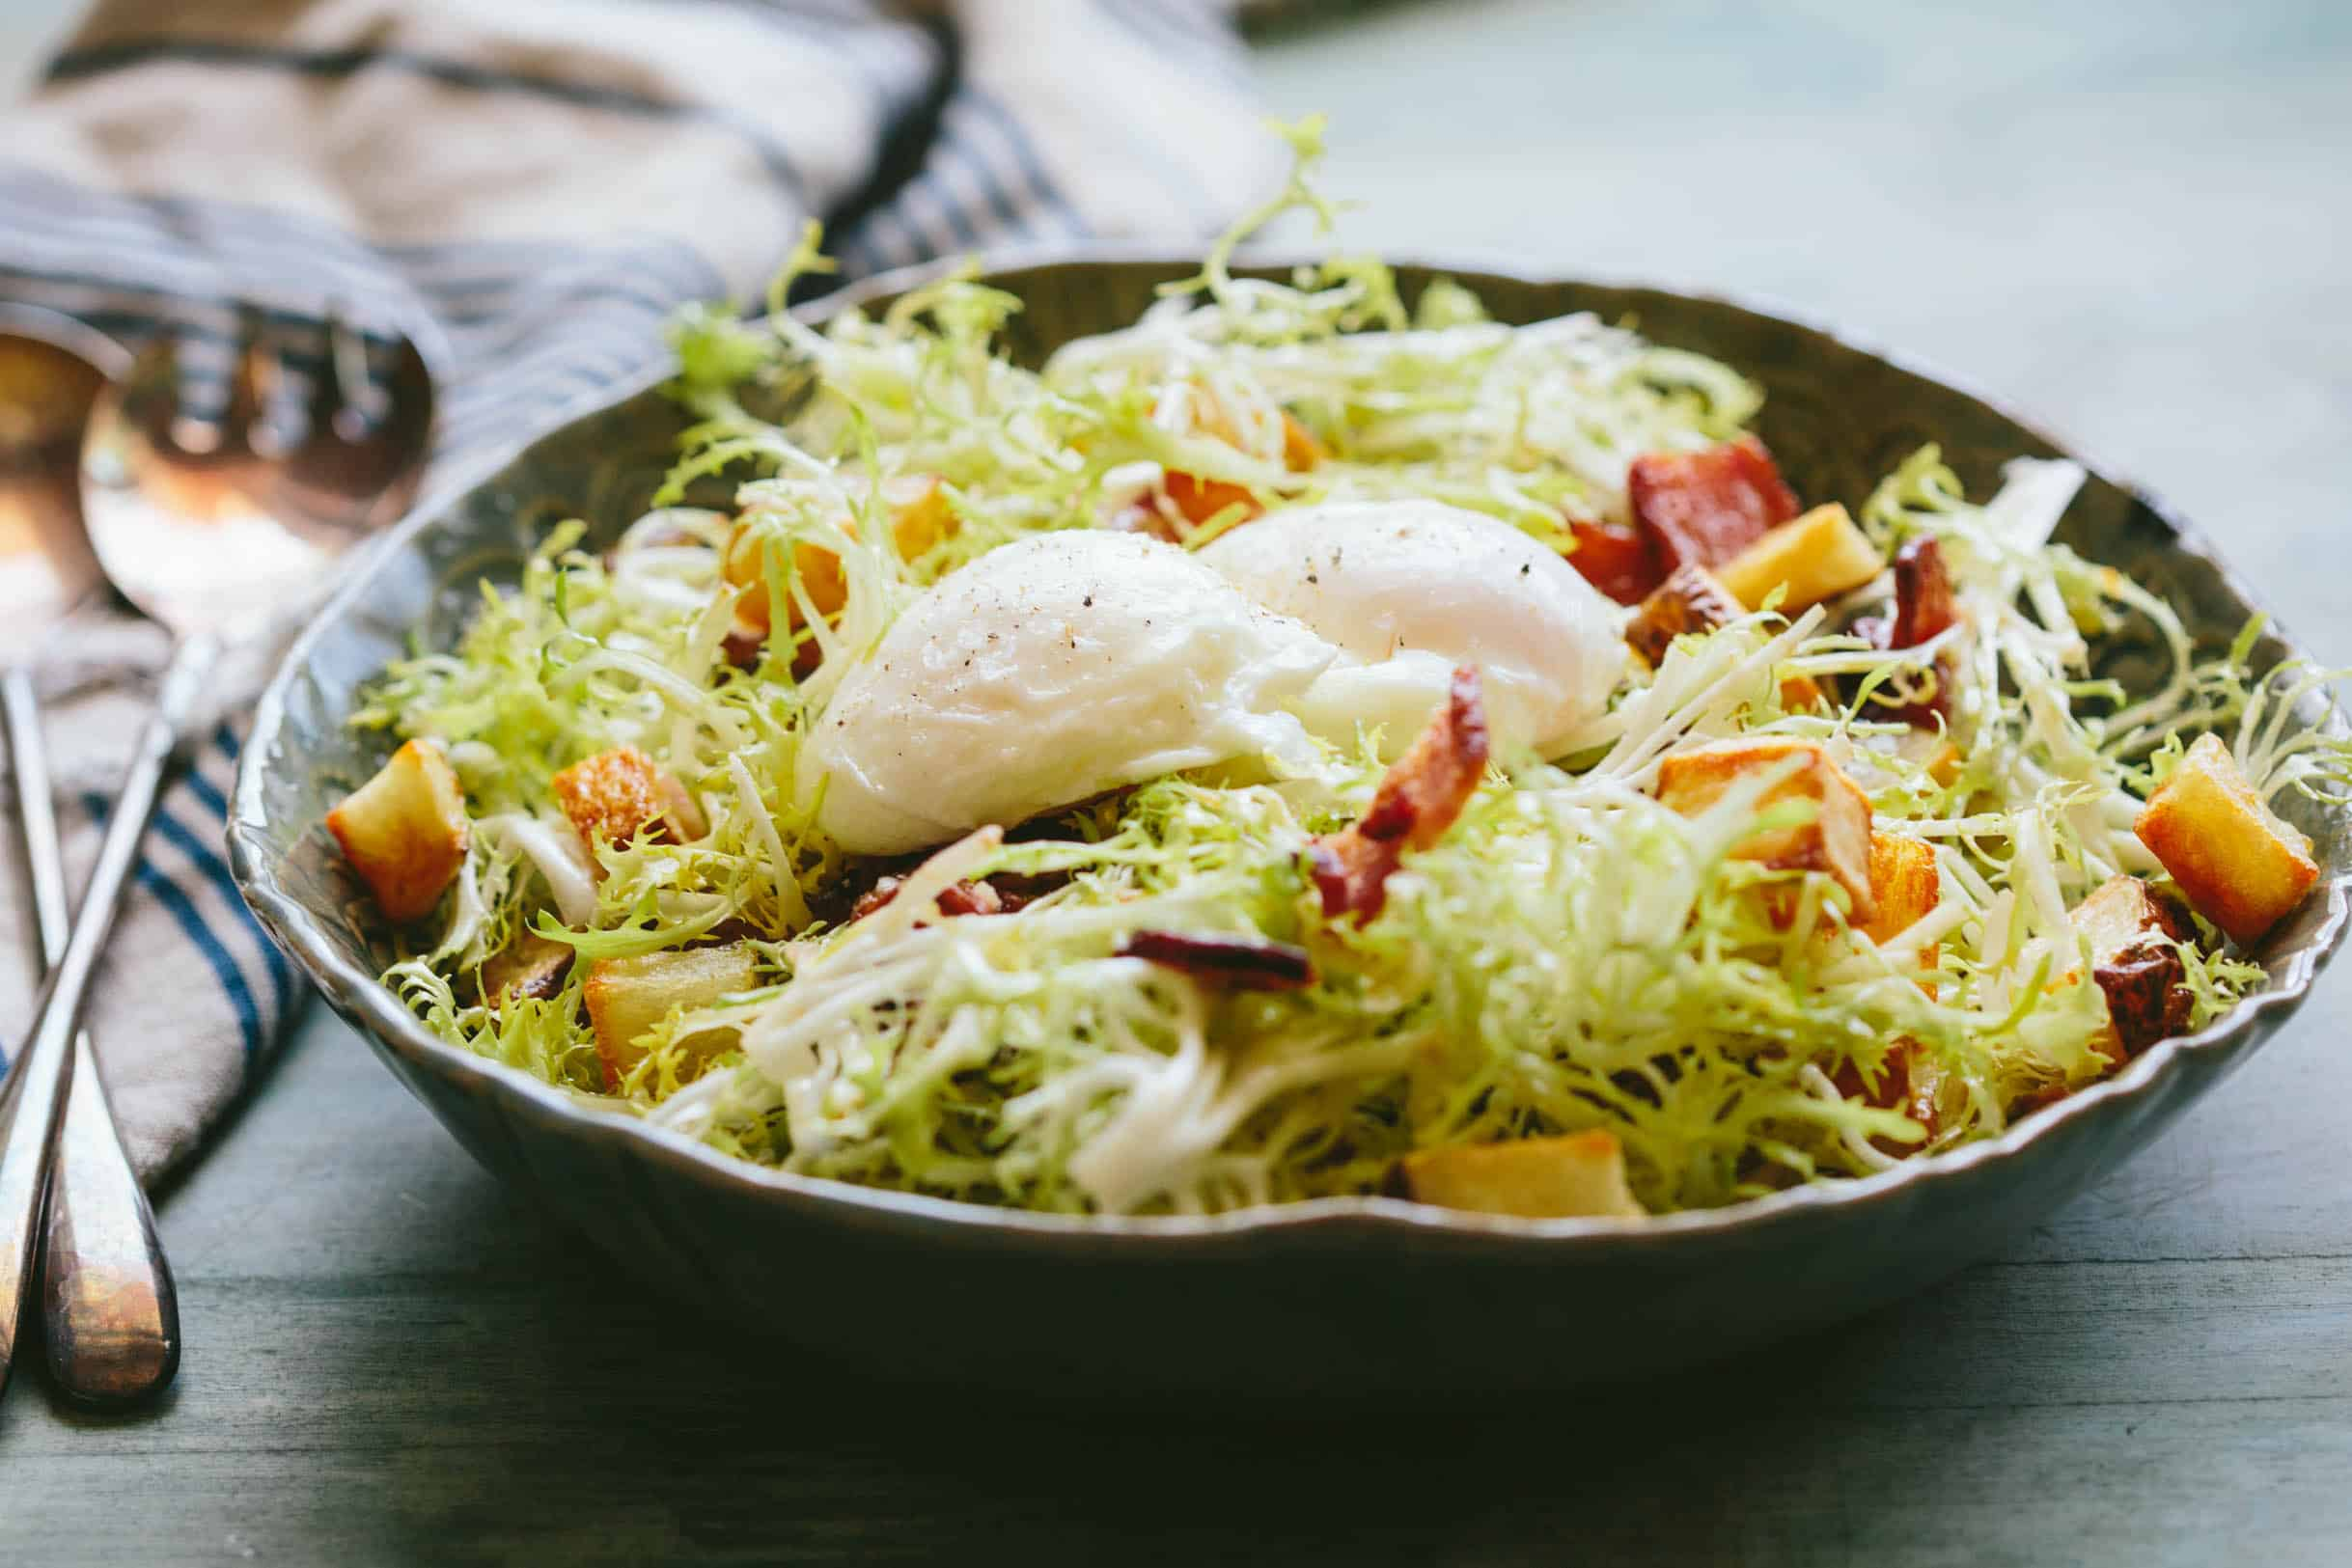 This classic recipe for Lyonnaise Salad is an easy and delicious salad that's filling enough to have as a meal. #french #lyonnaise #poached #eggs #salad #recipe | ColeyCooks.com